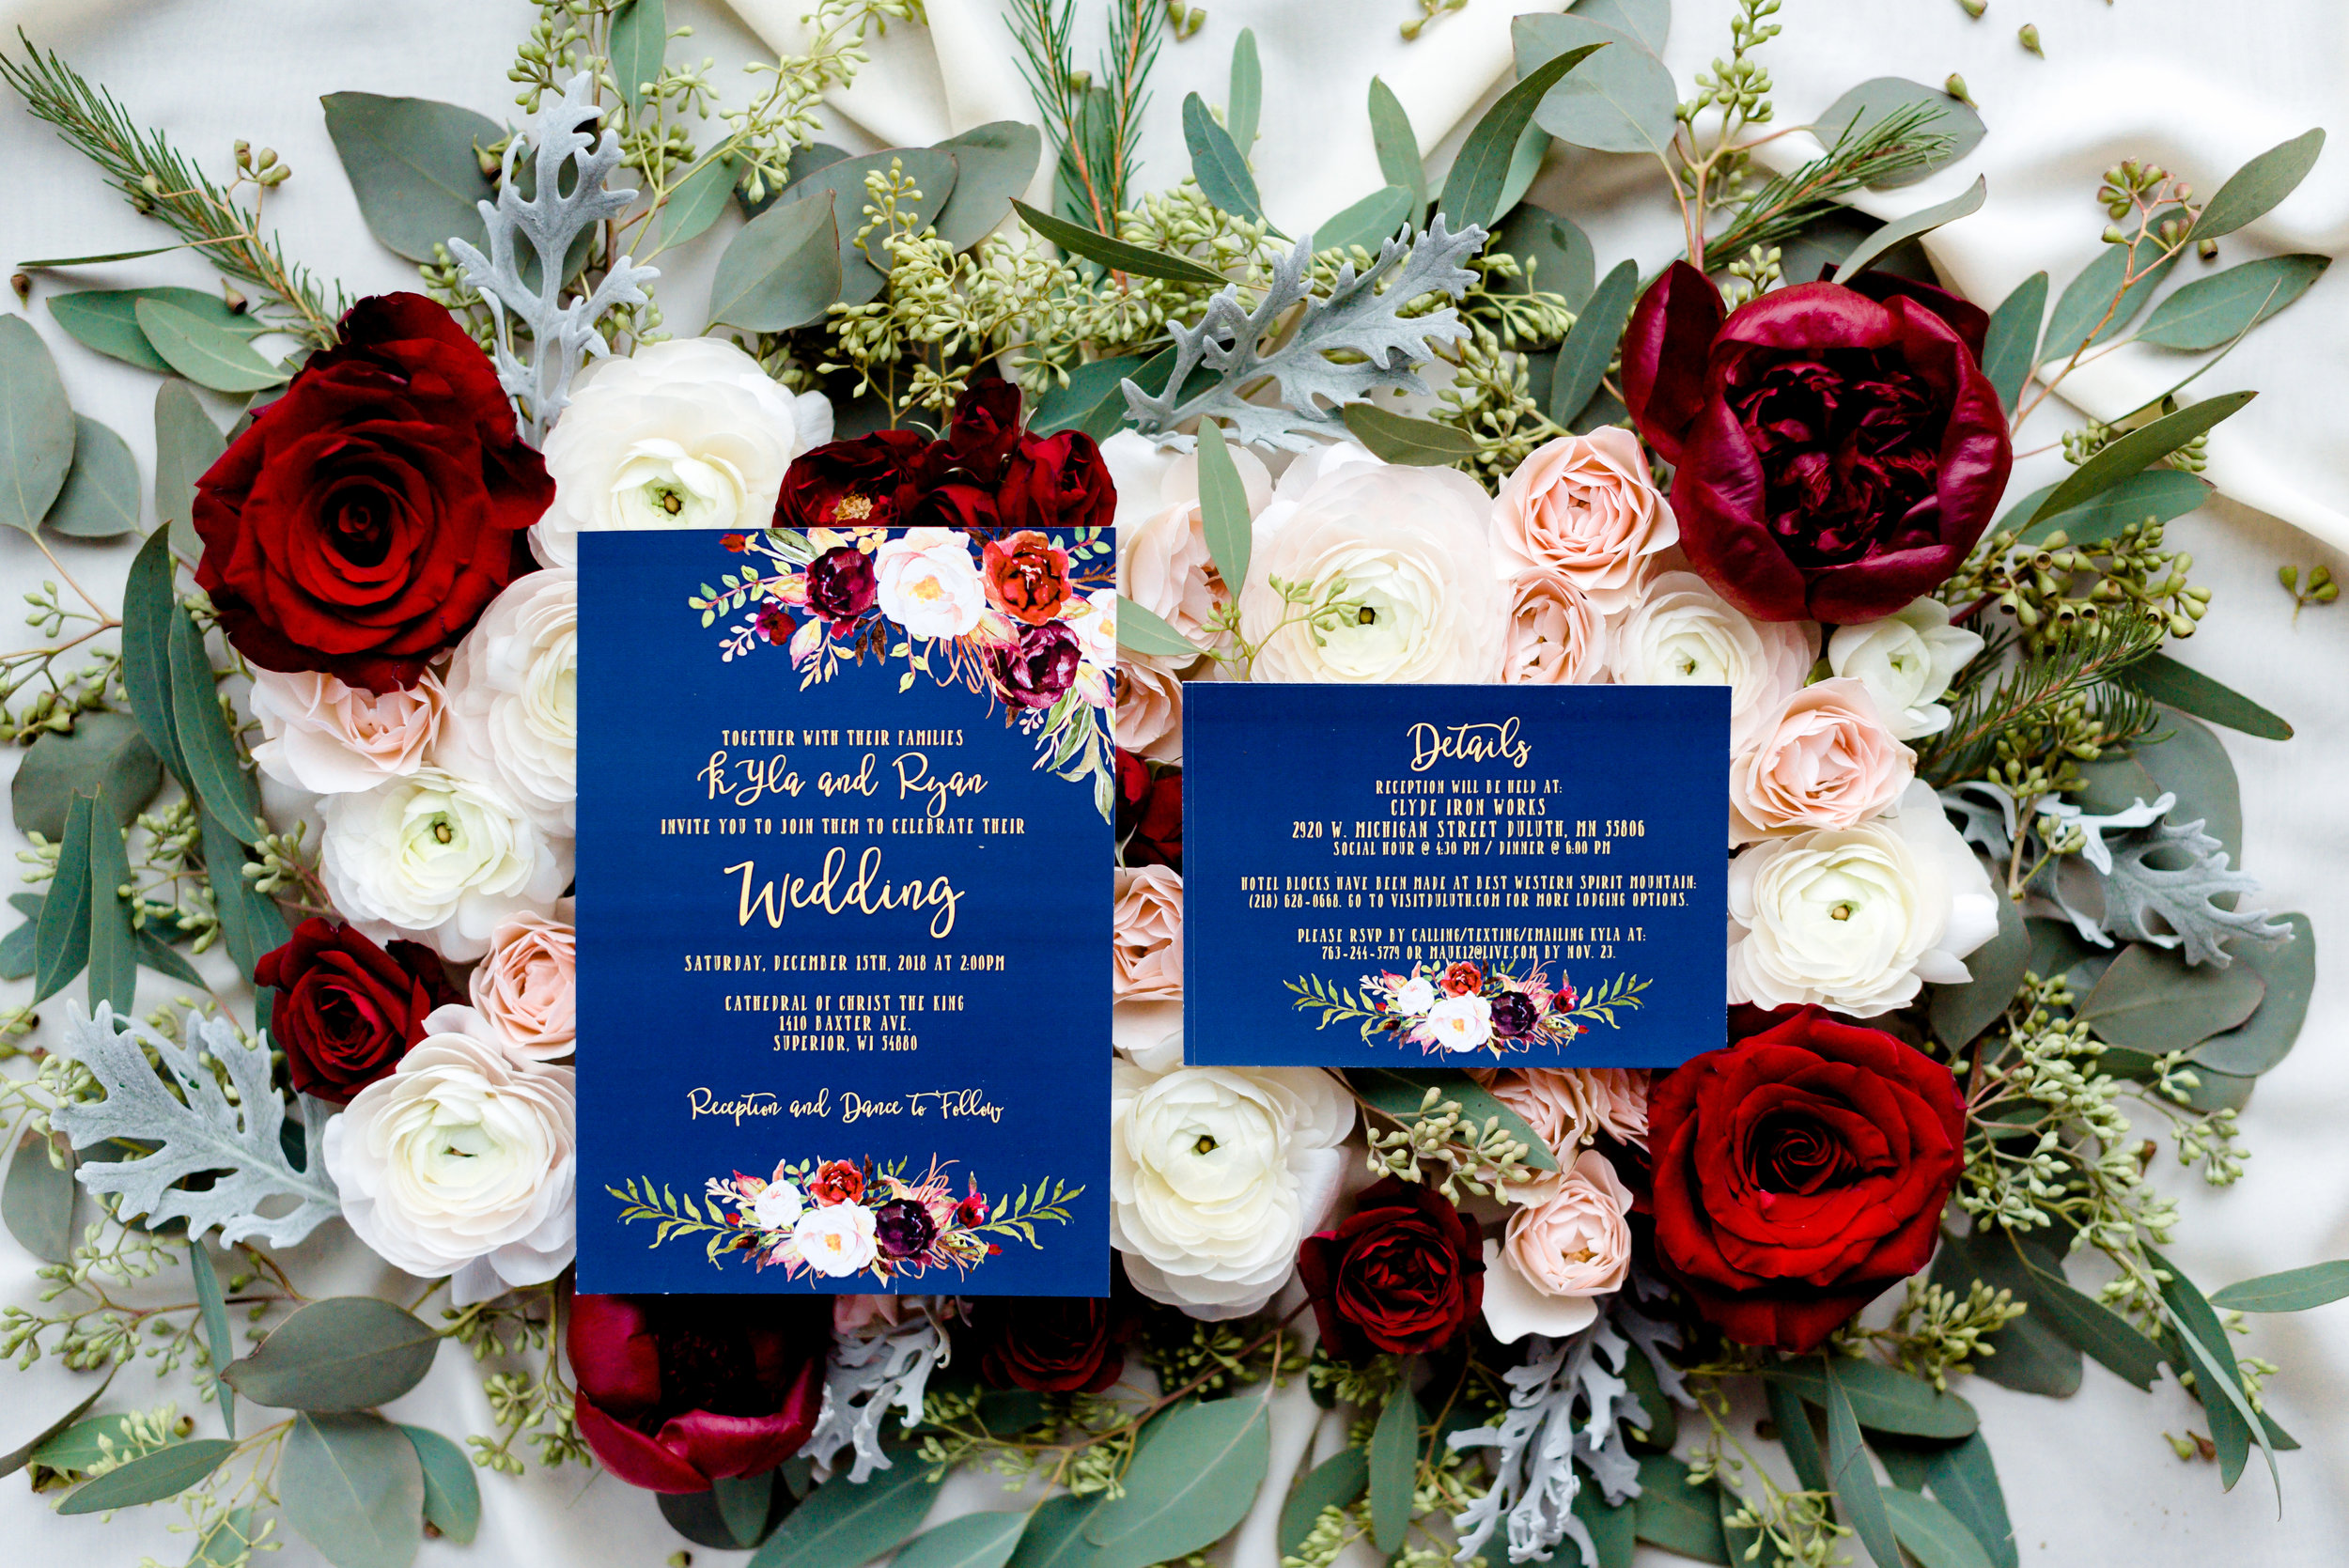 Luxury Wedding in Duluth MN - Destination Wedding Details Invitation Suite